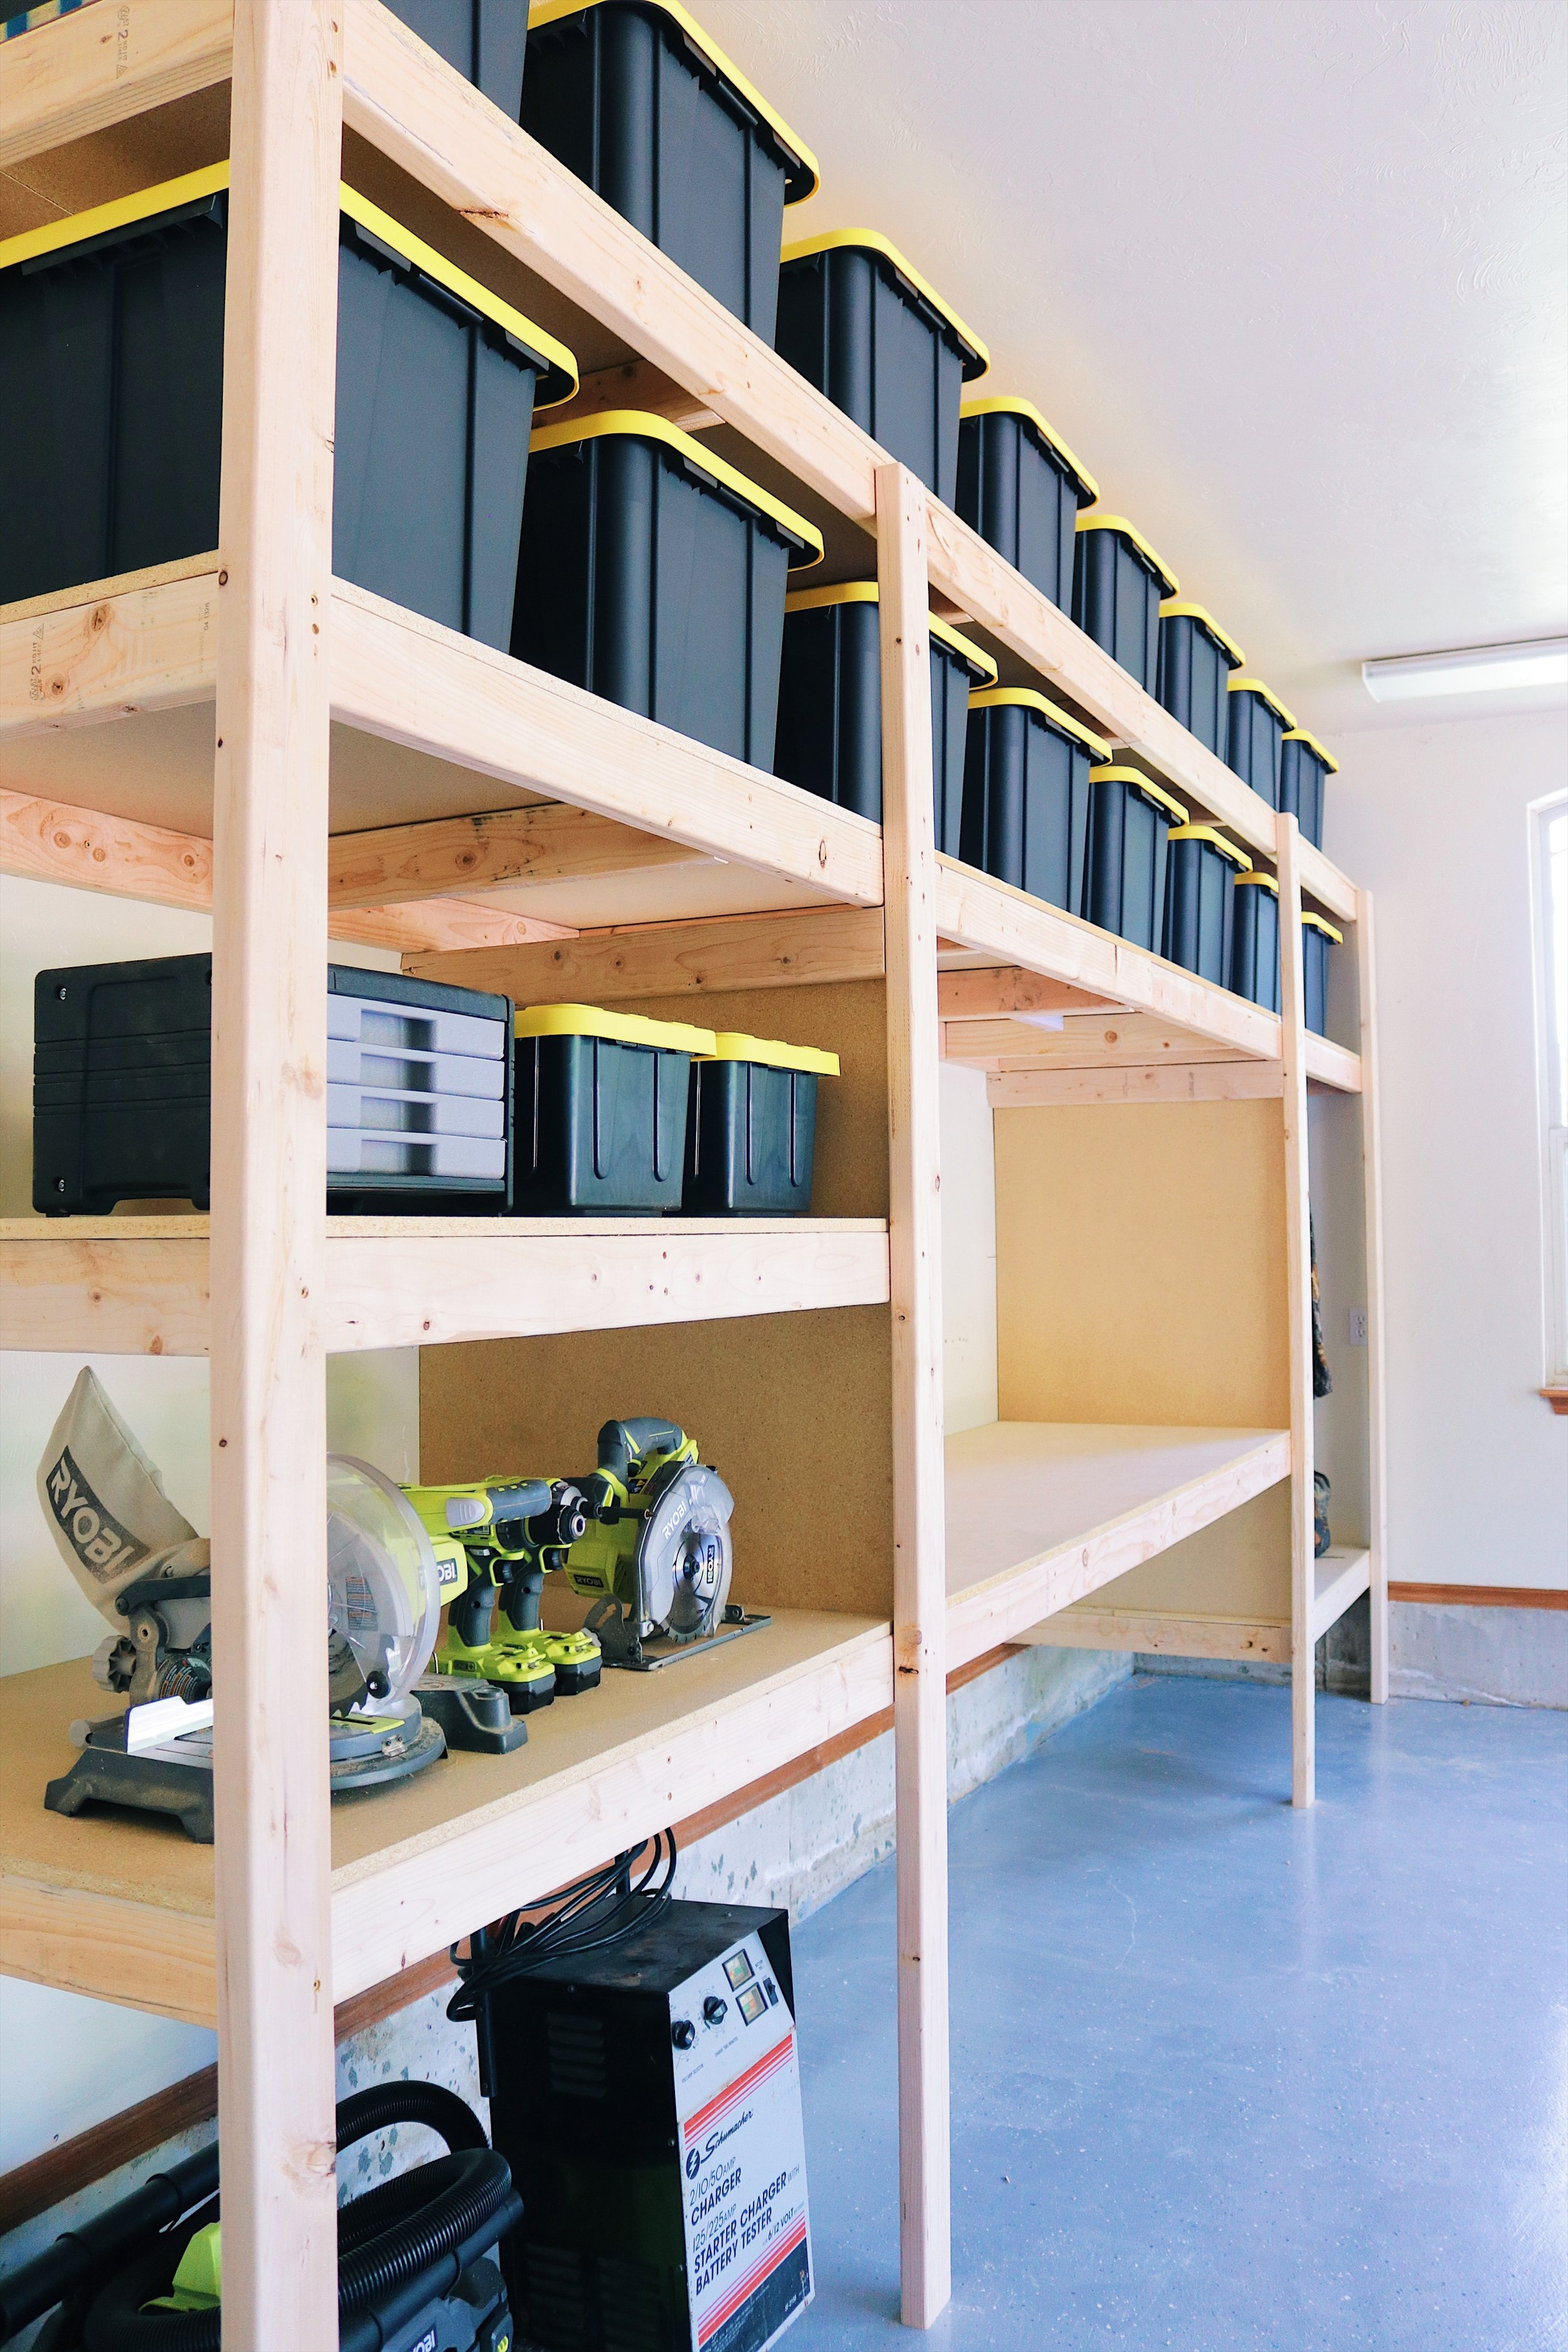 DIY Garage Shelves — Modern Builds on diy wood lamps, diy wood kitchen projects, diy wood trays, diy chairs plans, wood shed construction plans, diy wood containers, diy fire pit plans, diy wine cellar plans, diy workbench plans, diy chicken house plans, diy sheds plans, diy beverage cooler plans, wood storage lean to plans, diy wood box designs, diy shelving plans, diy wood garages,